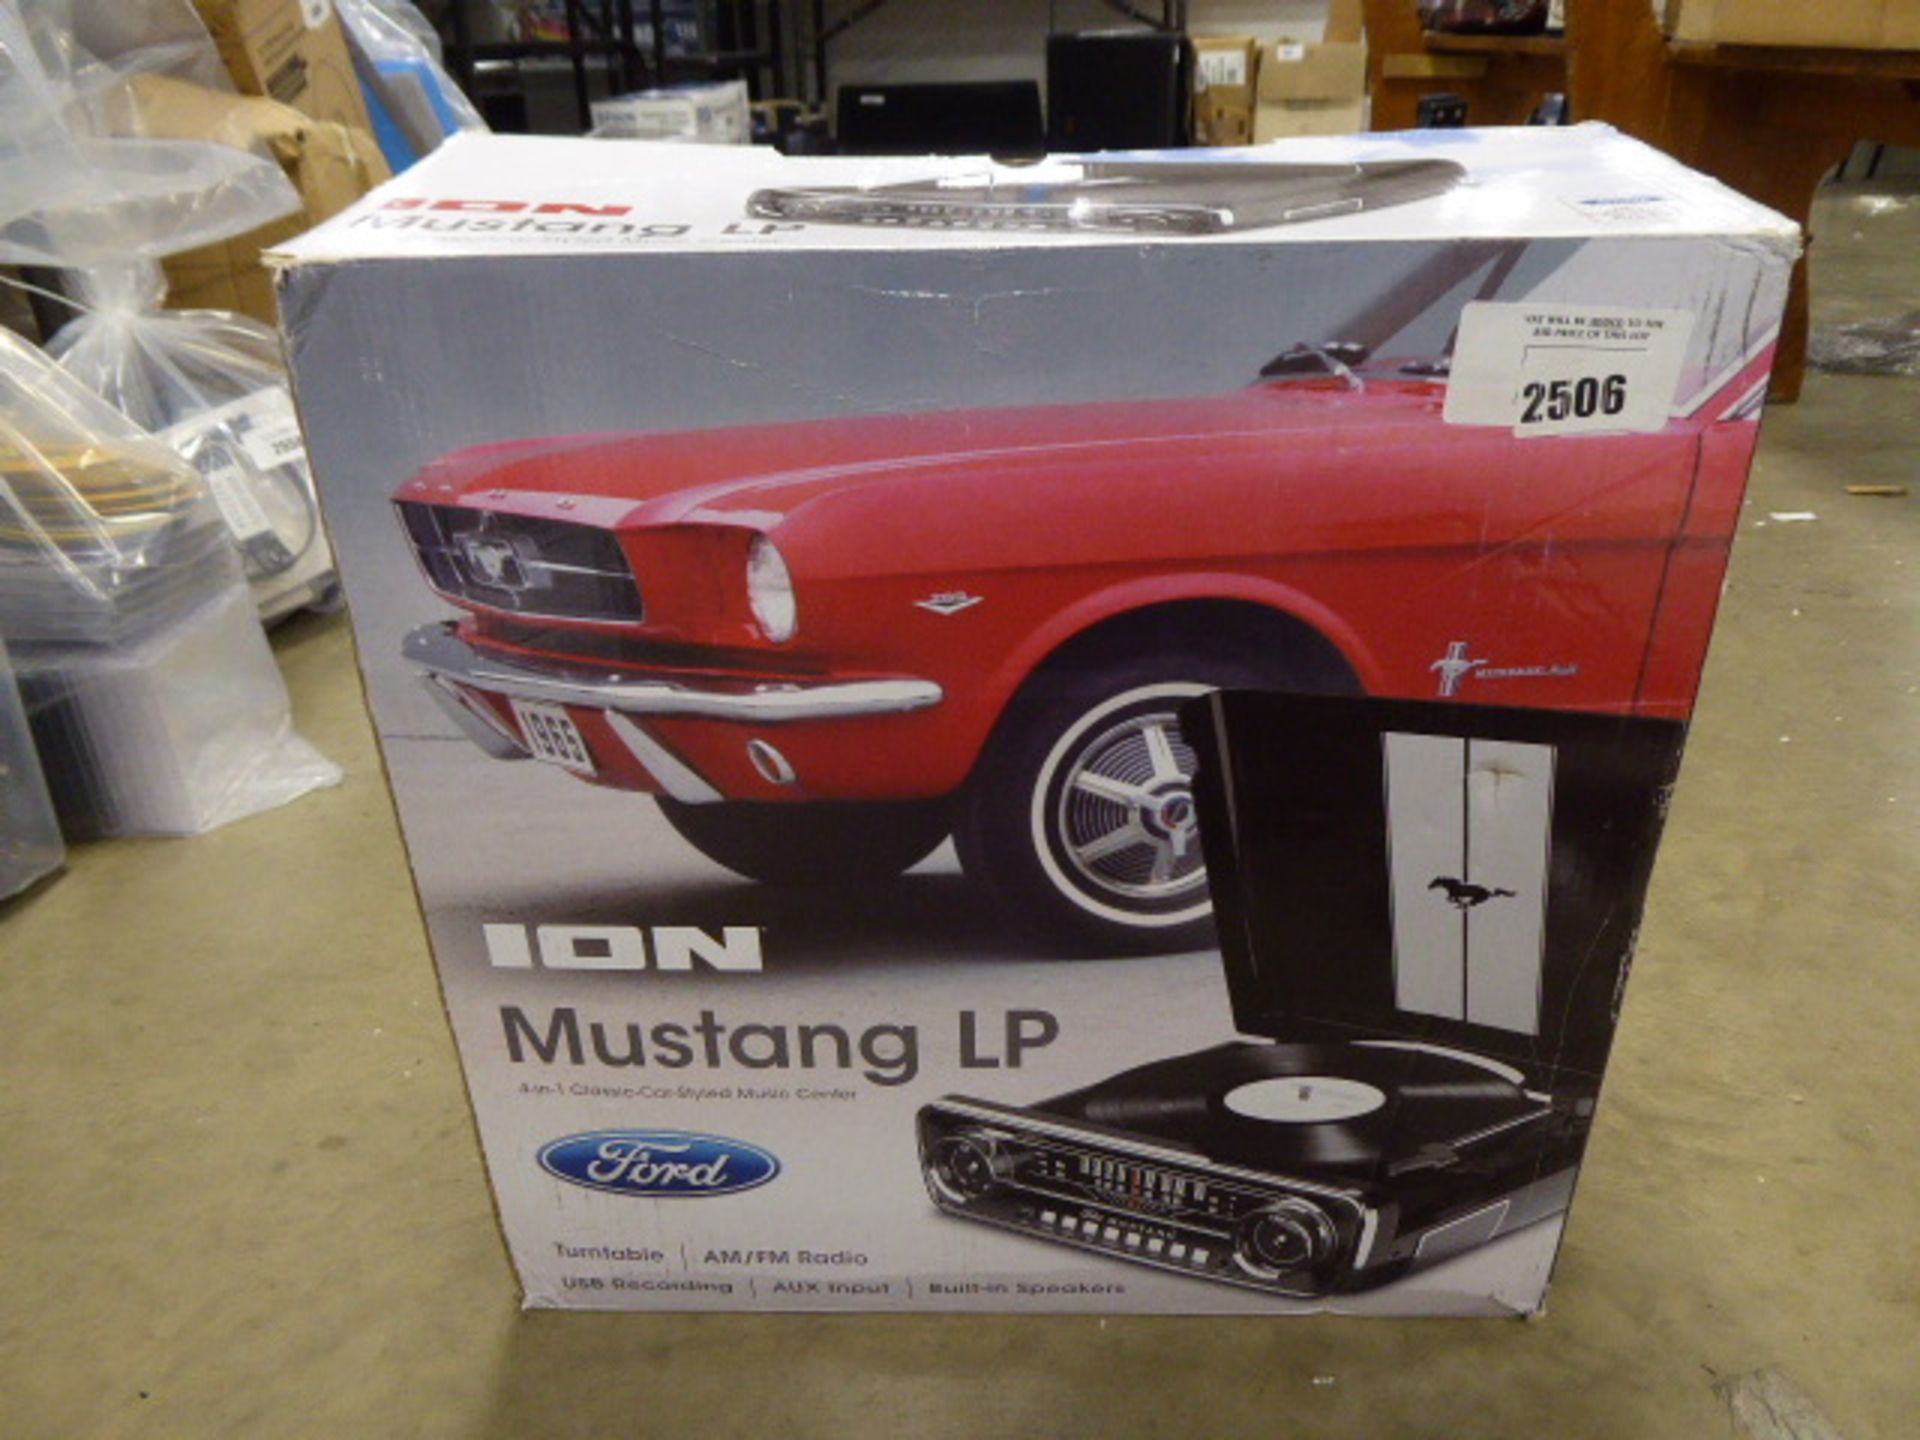 Ion mustang LP 4 in 1 classic car style music sensor in box